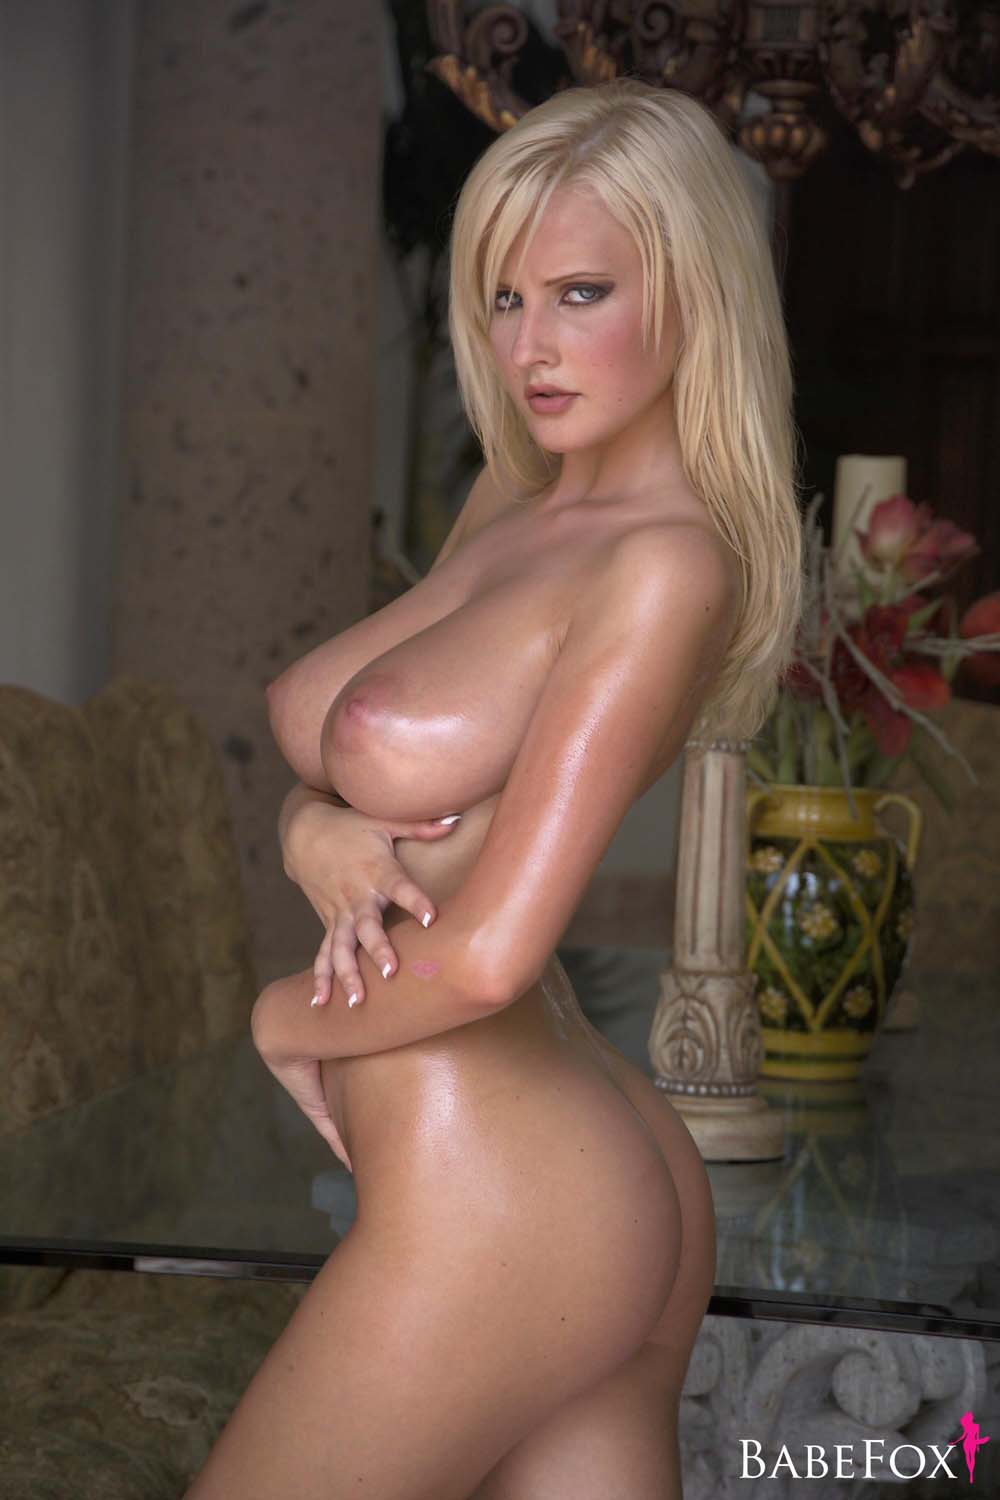 women-with-michelle-marsh-nude-videos-insertion-amateur